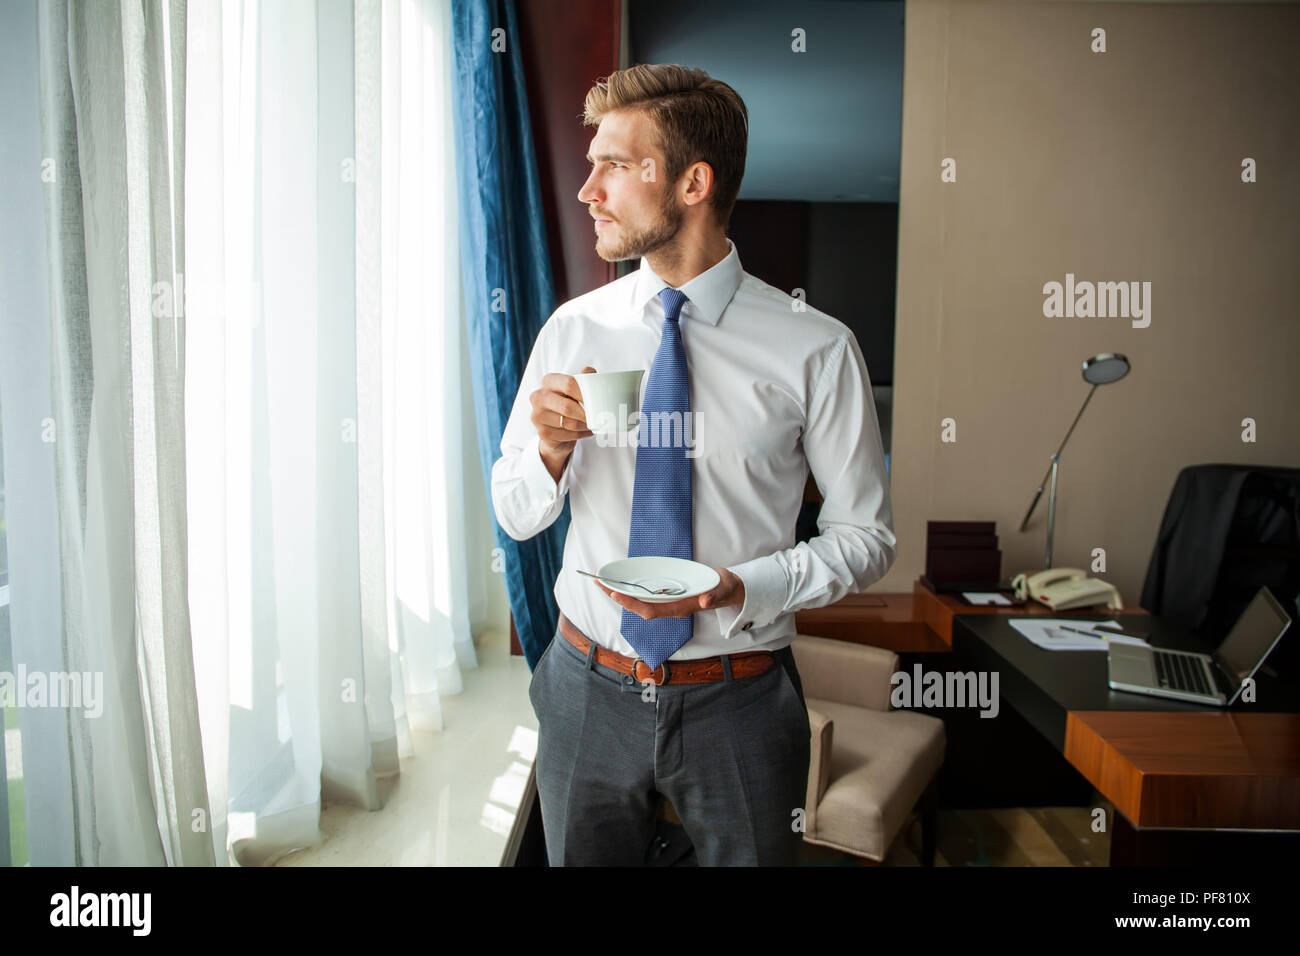 business trip and people concept - businessman drinking coffee at hotel room. - Stock Image